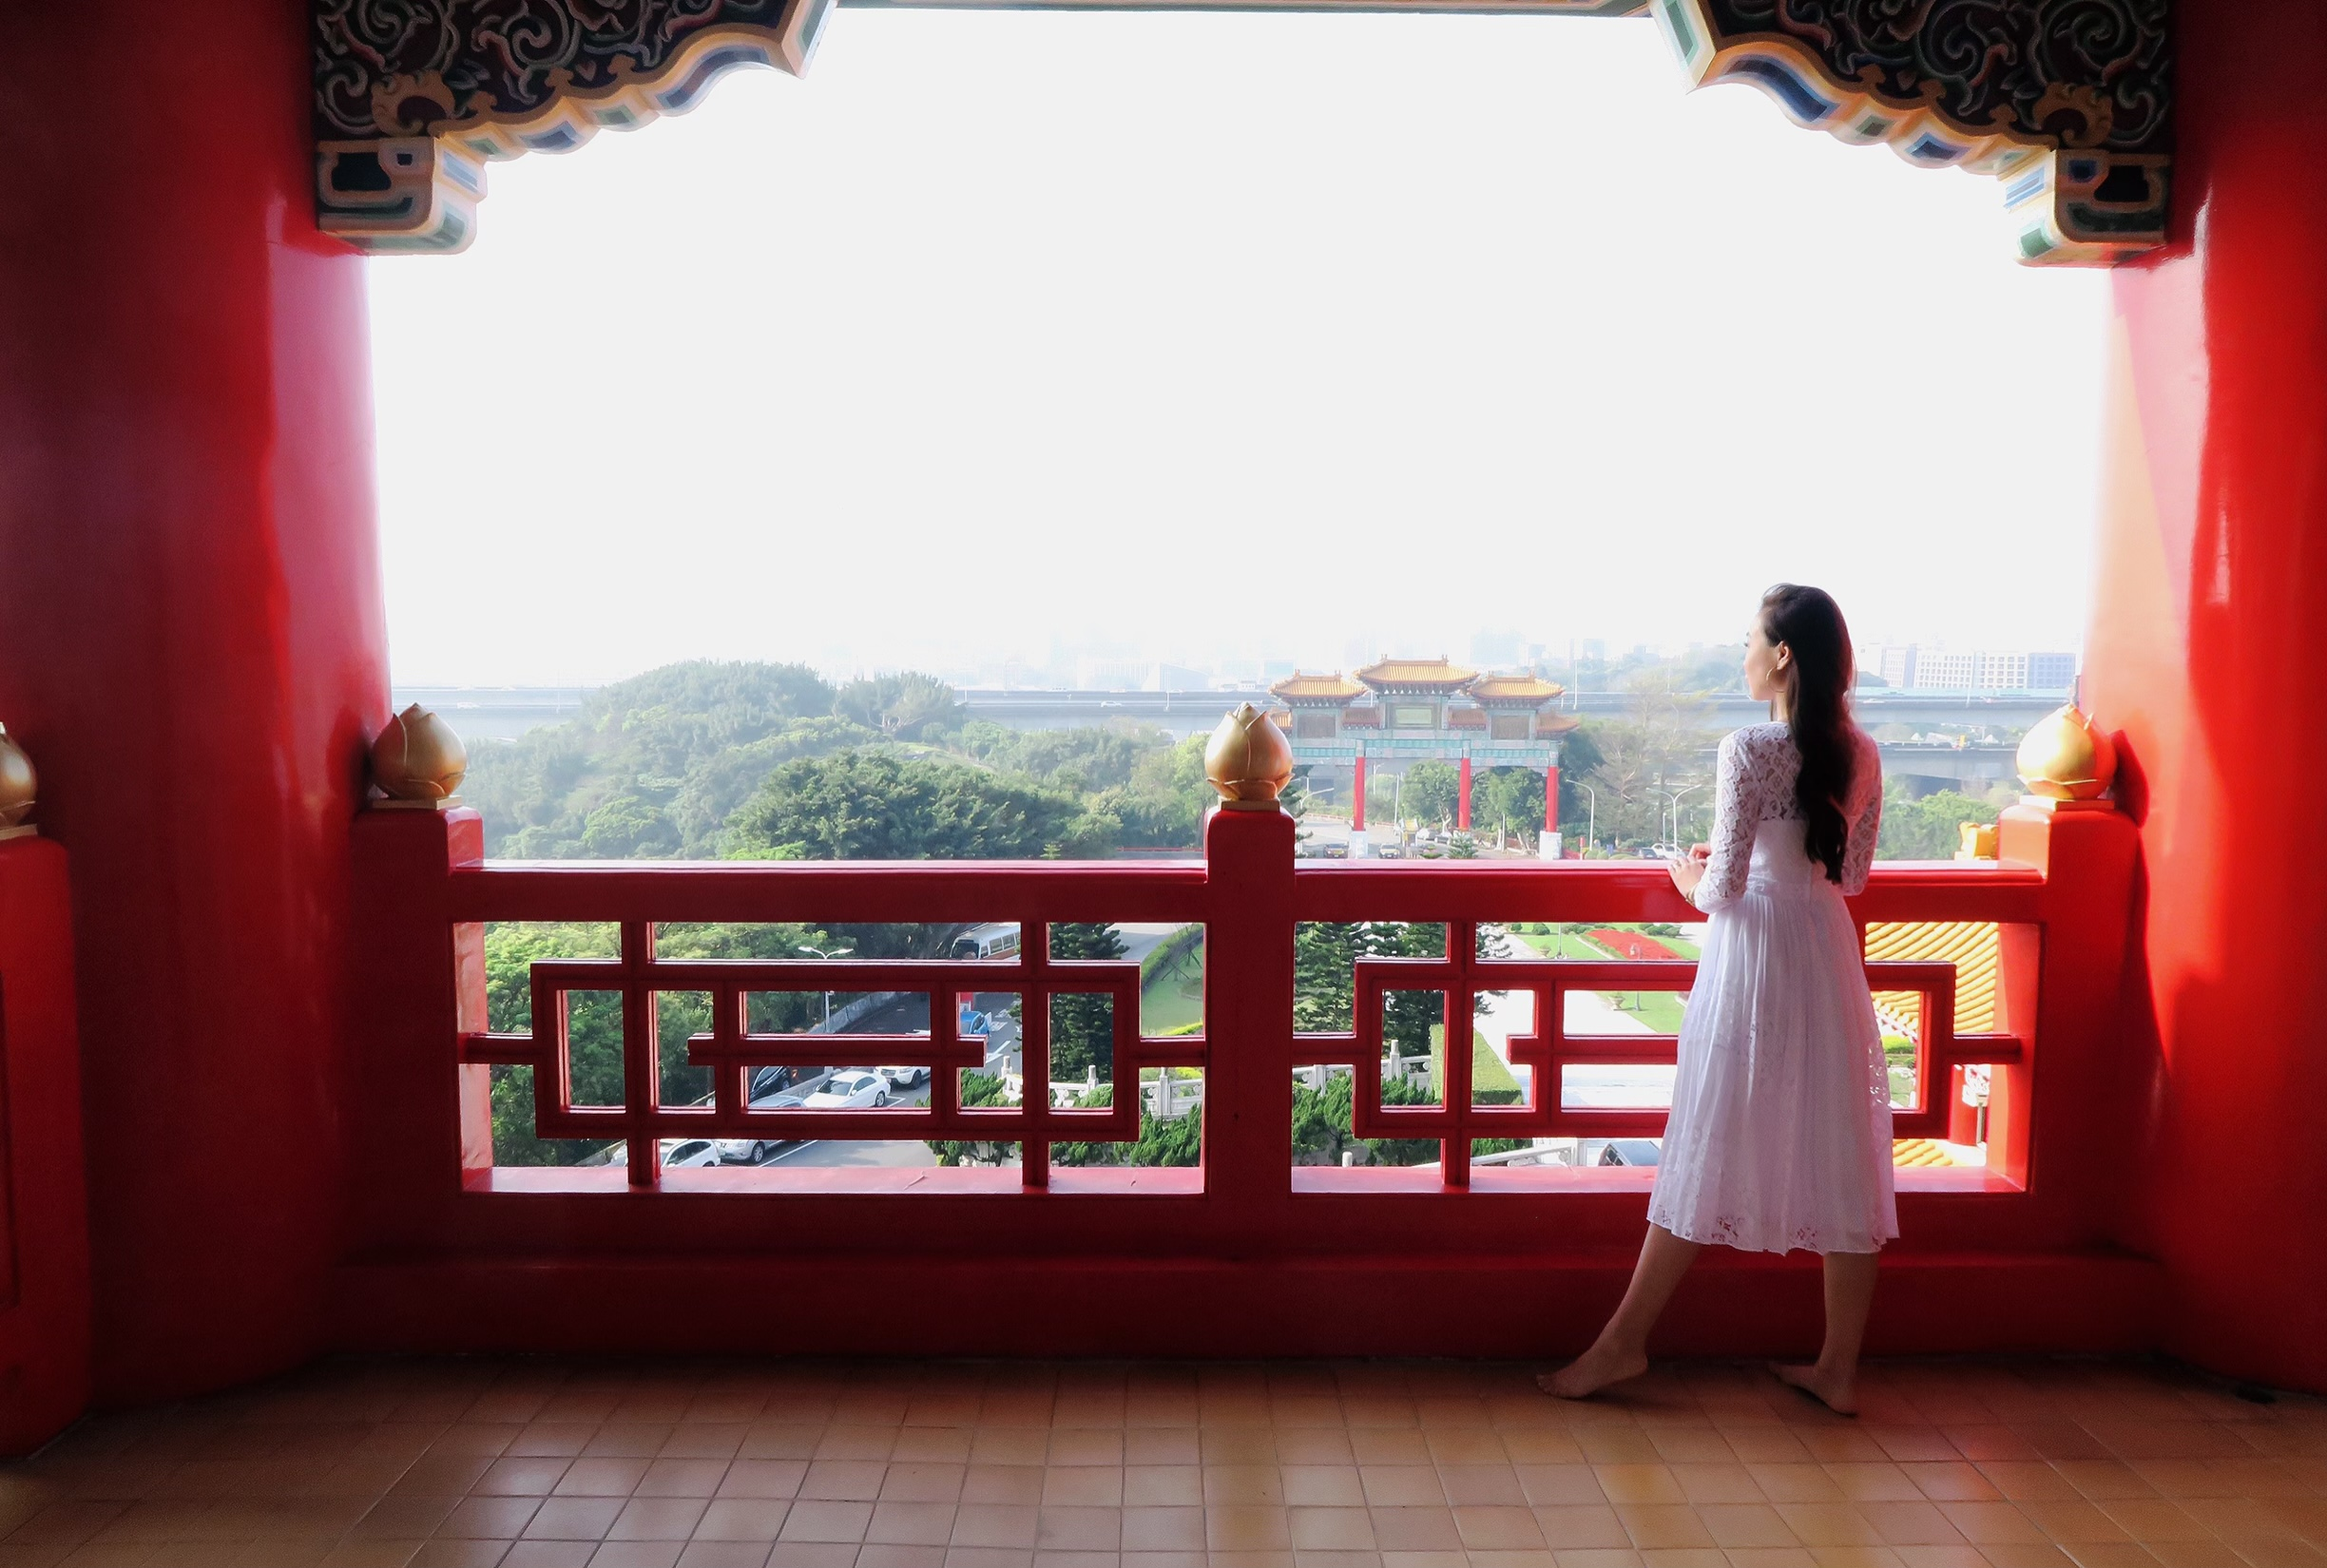 Grand hotel balcony in Taipei Taiwan Diana Elizabeth Phoenix travel blogger wearing white dress looking into city